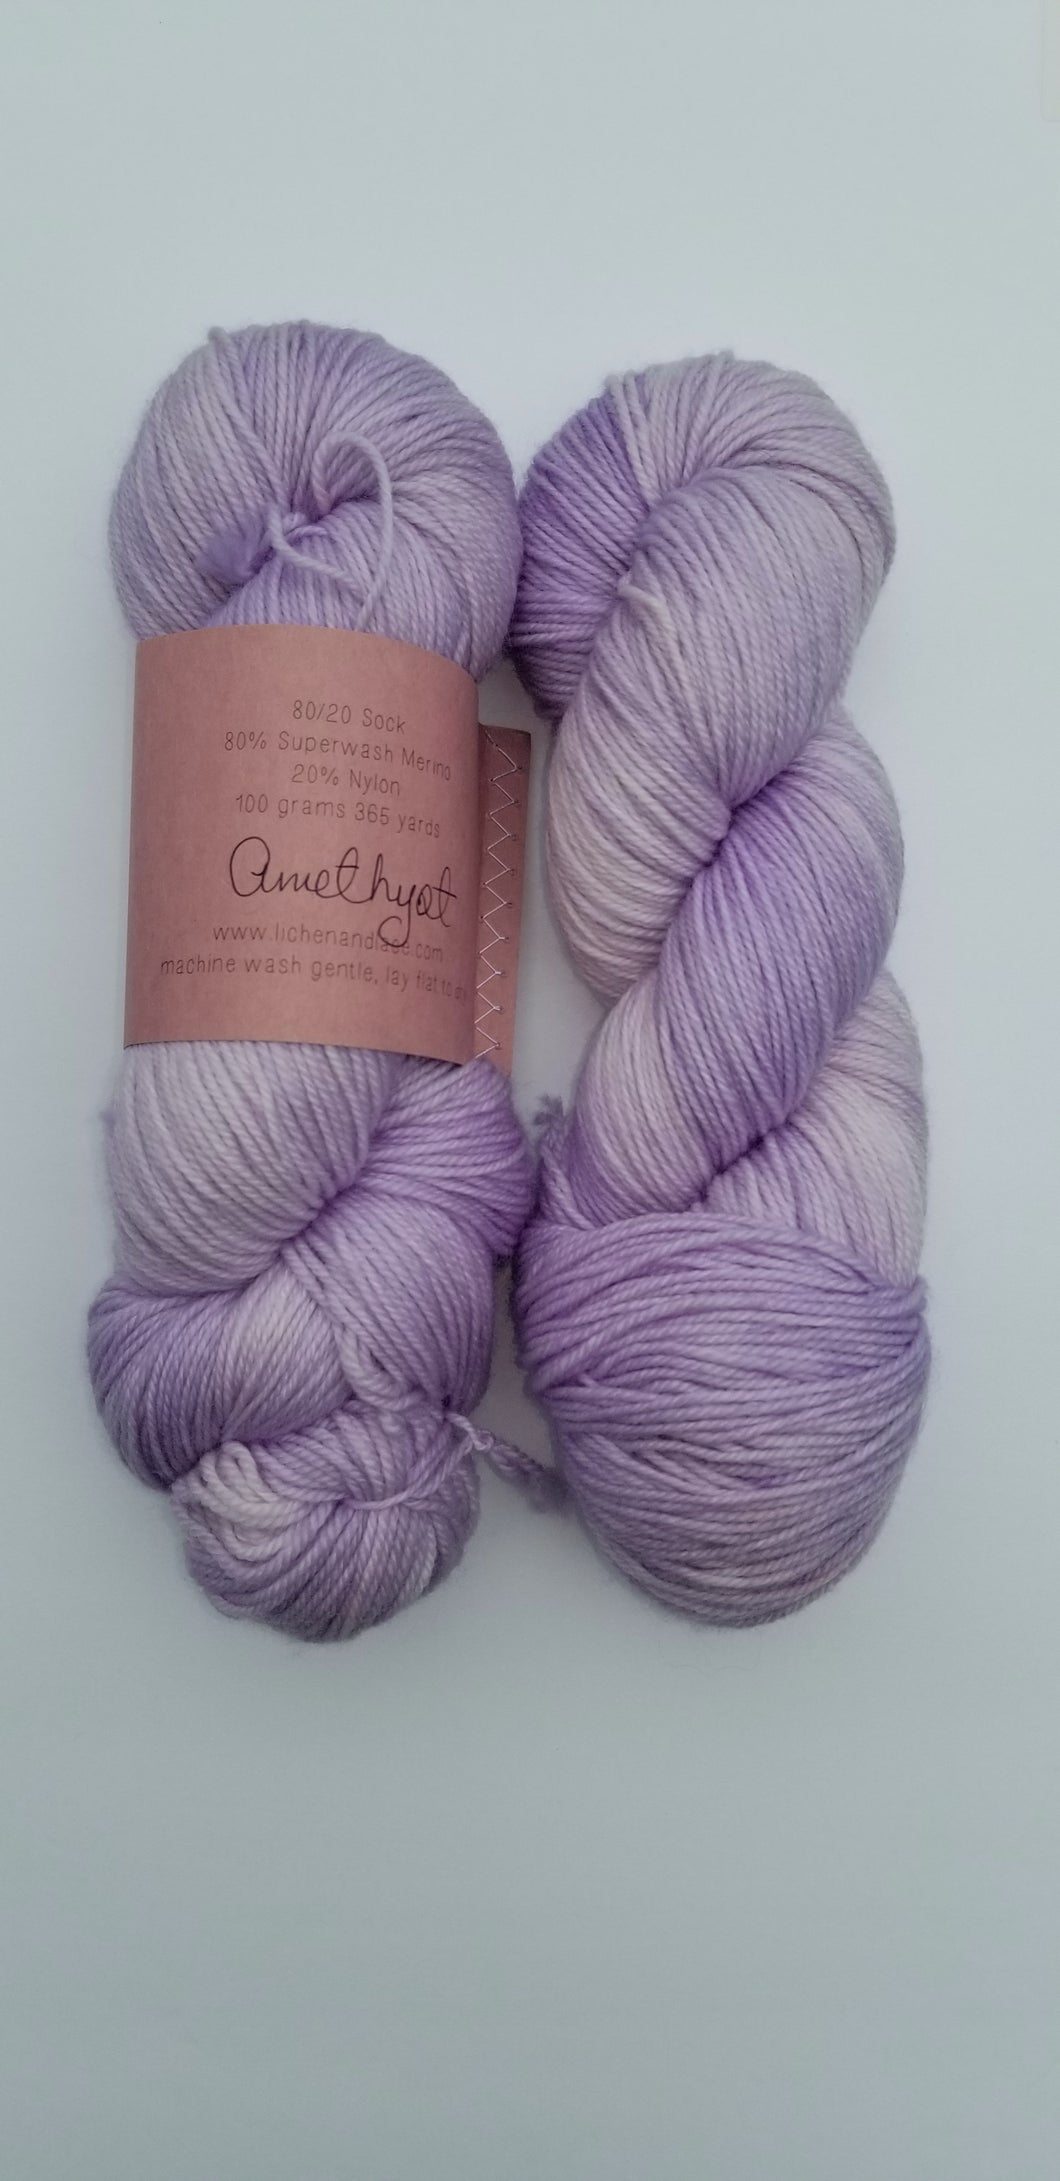 Lichen and Lace - 80/20 Sock - Amethyst